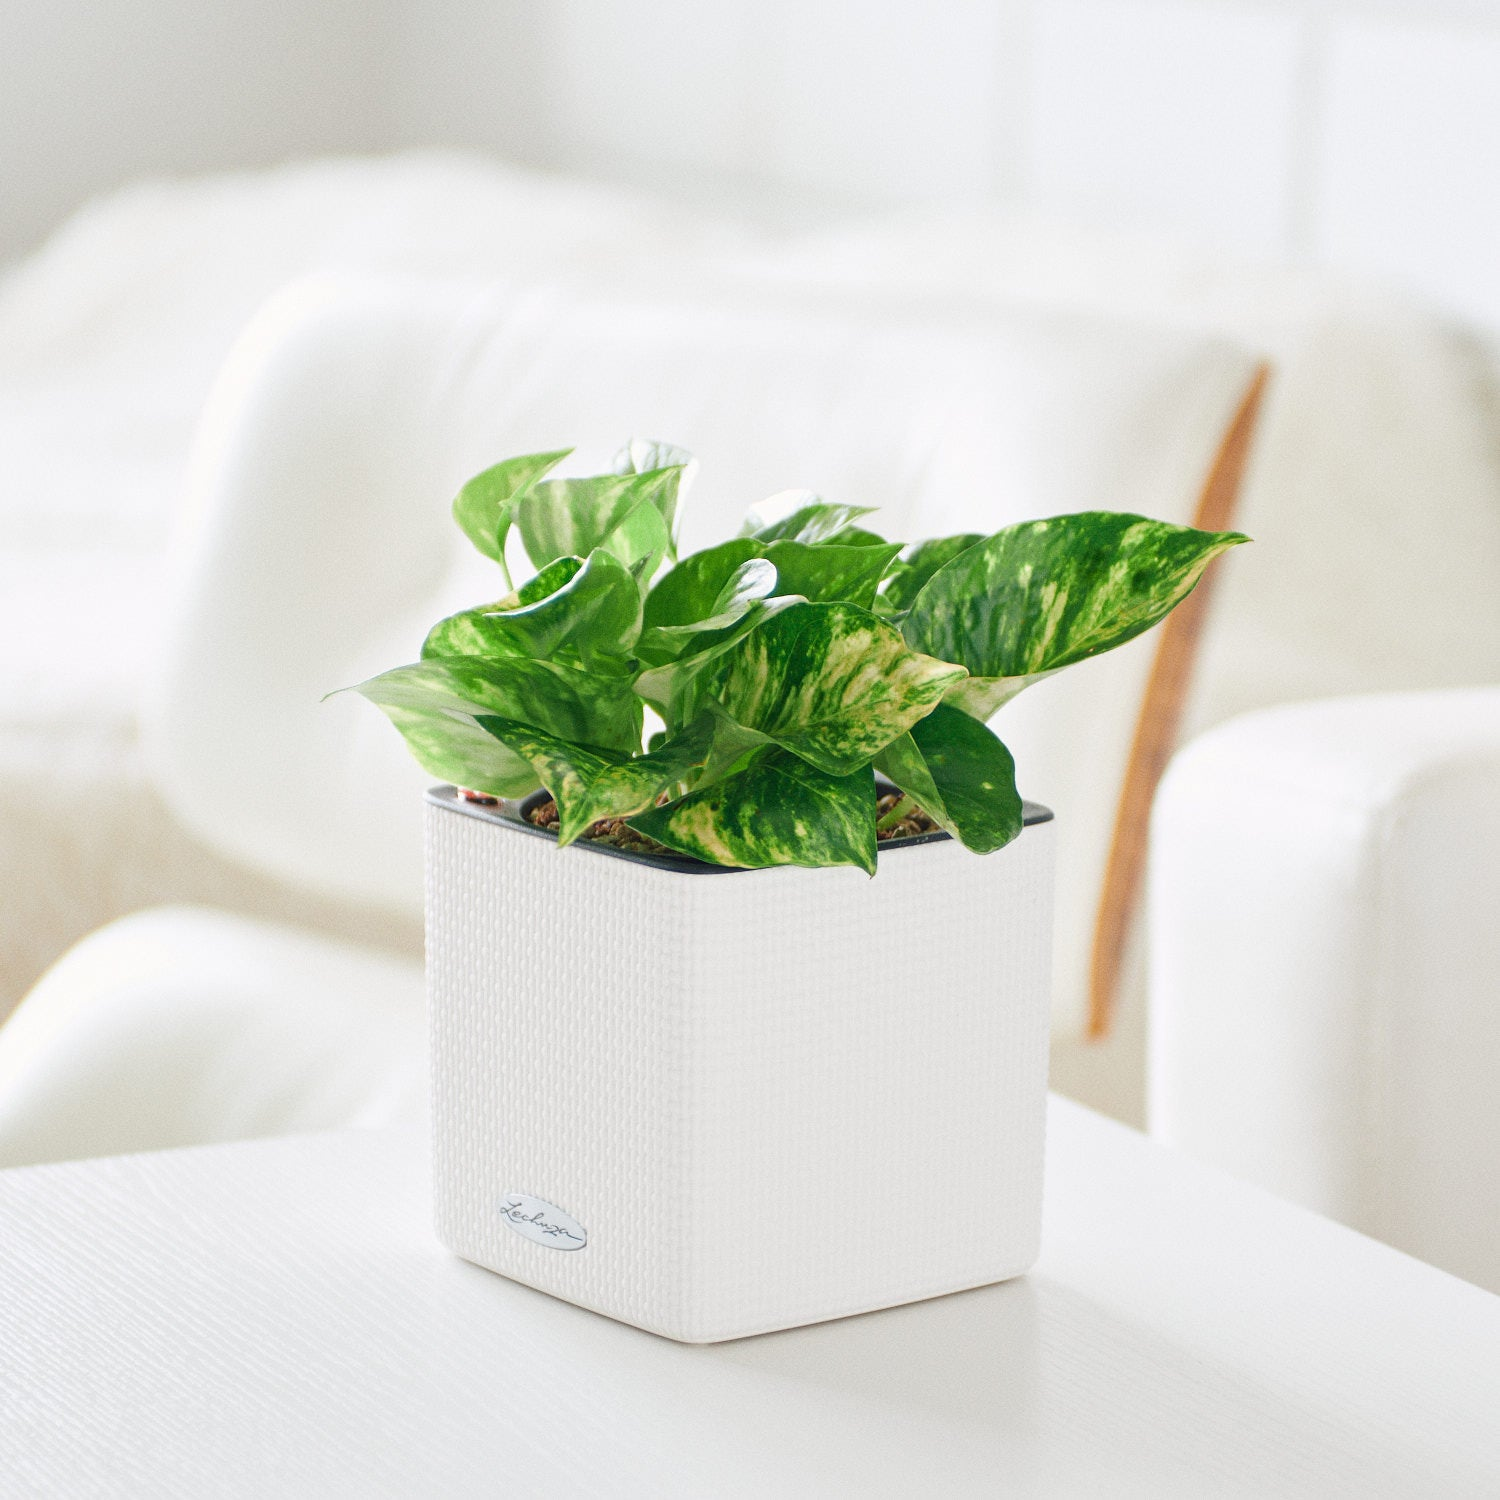 Pothos Variegated  In Lechuza Cube 14 White Planter | My City Plants